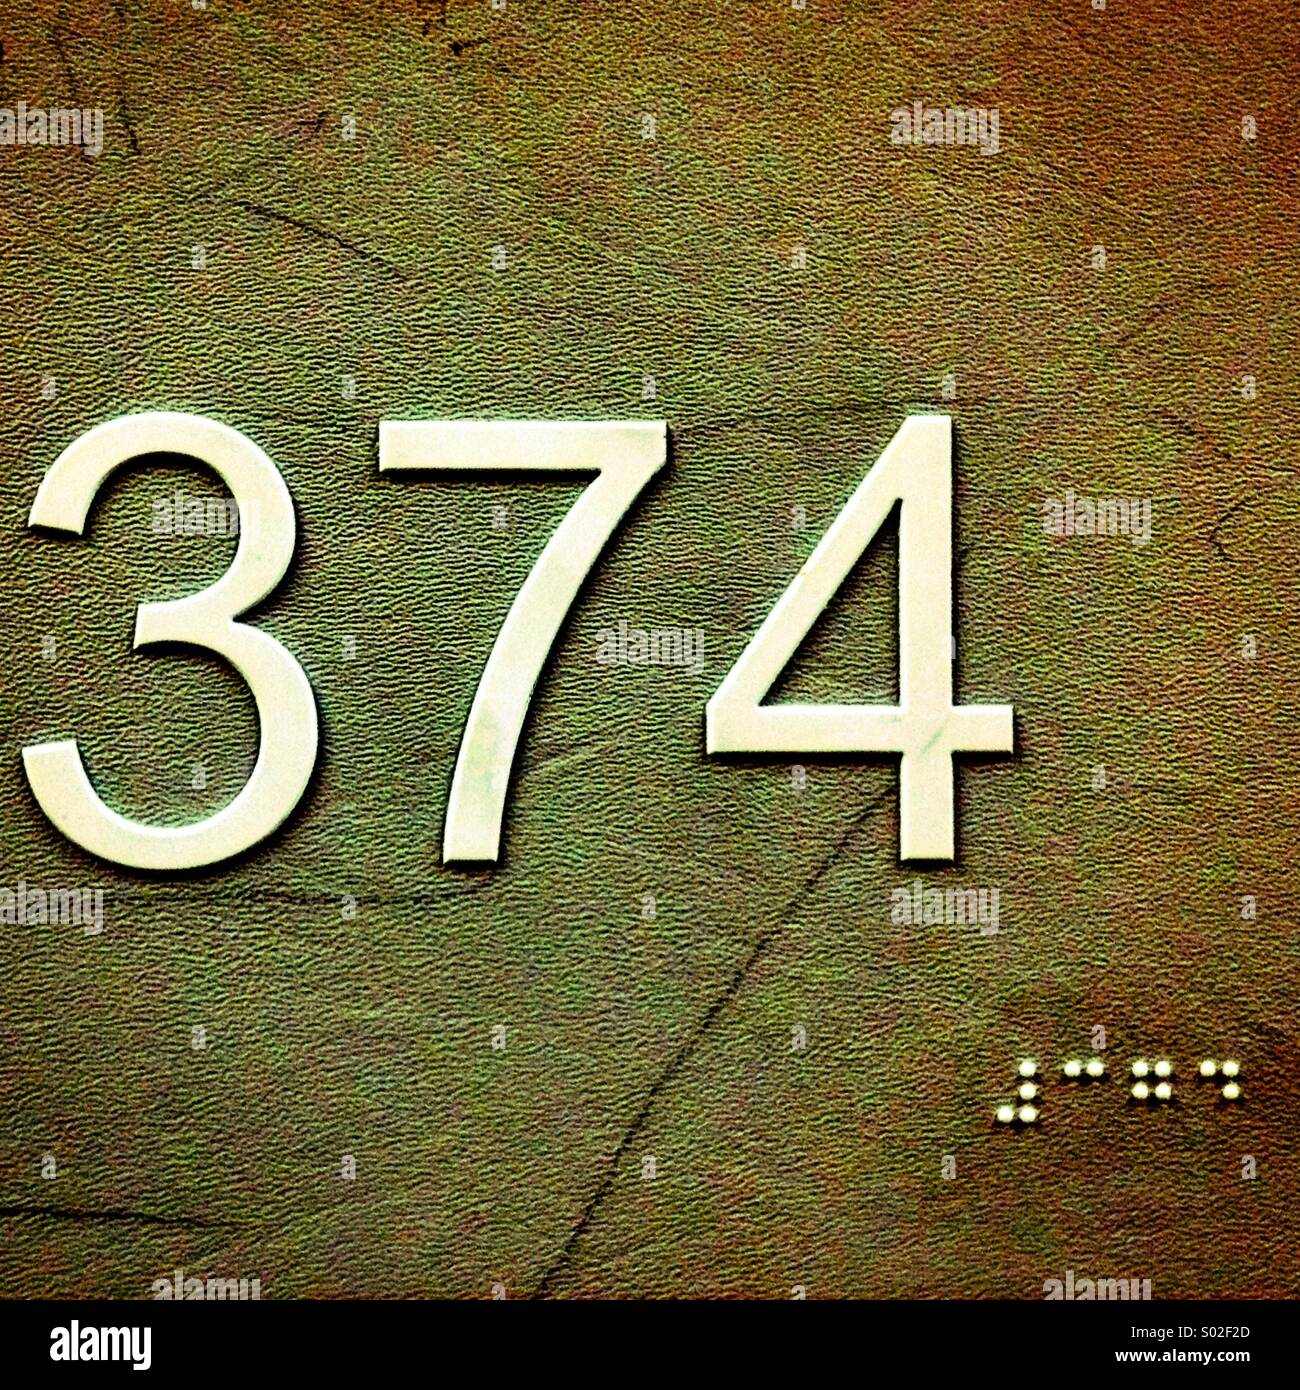 Numbers and Braille. - Stock Image